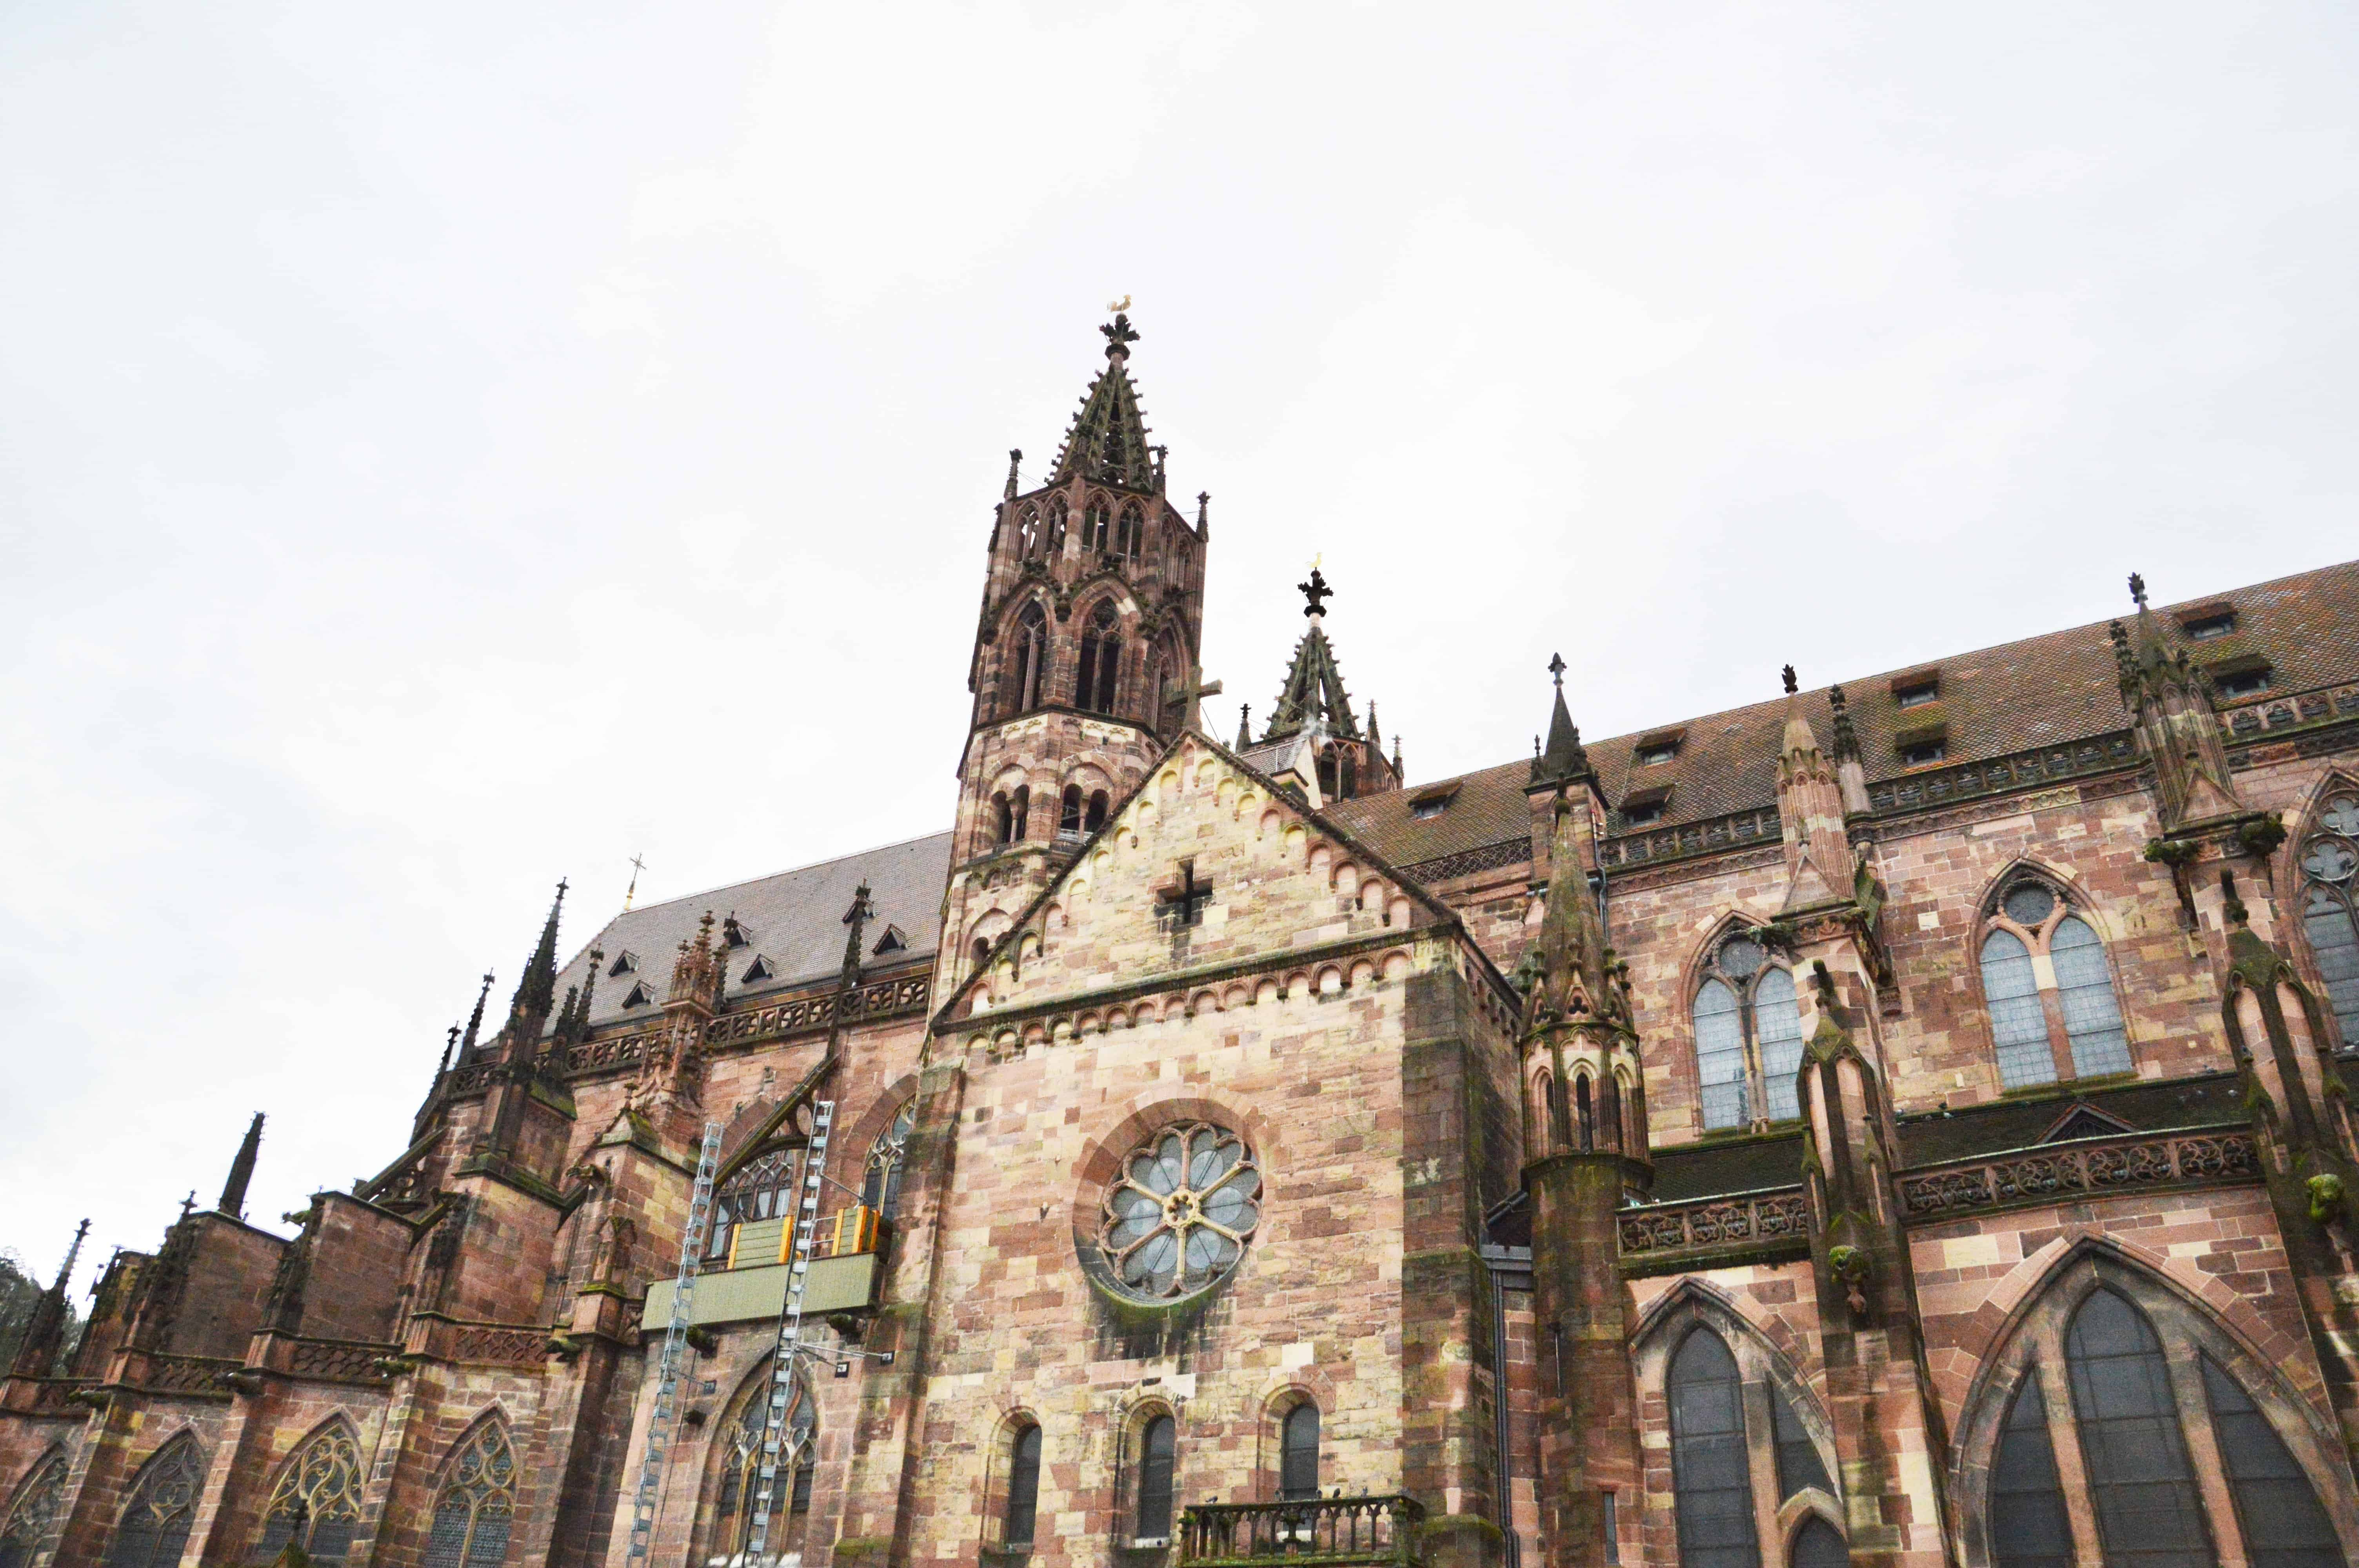 Chicago Blogger|Travel Blogger|Quiet Travel|Anxious Traveler|Lifestyle Blogger|Food Blogger|Wine Blogger|Europe Christmas Market Tour|Freiburg